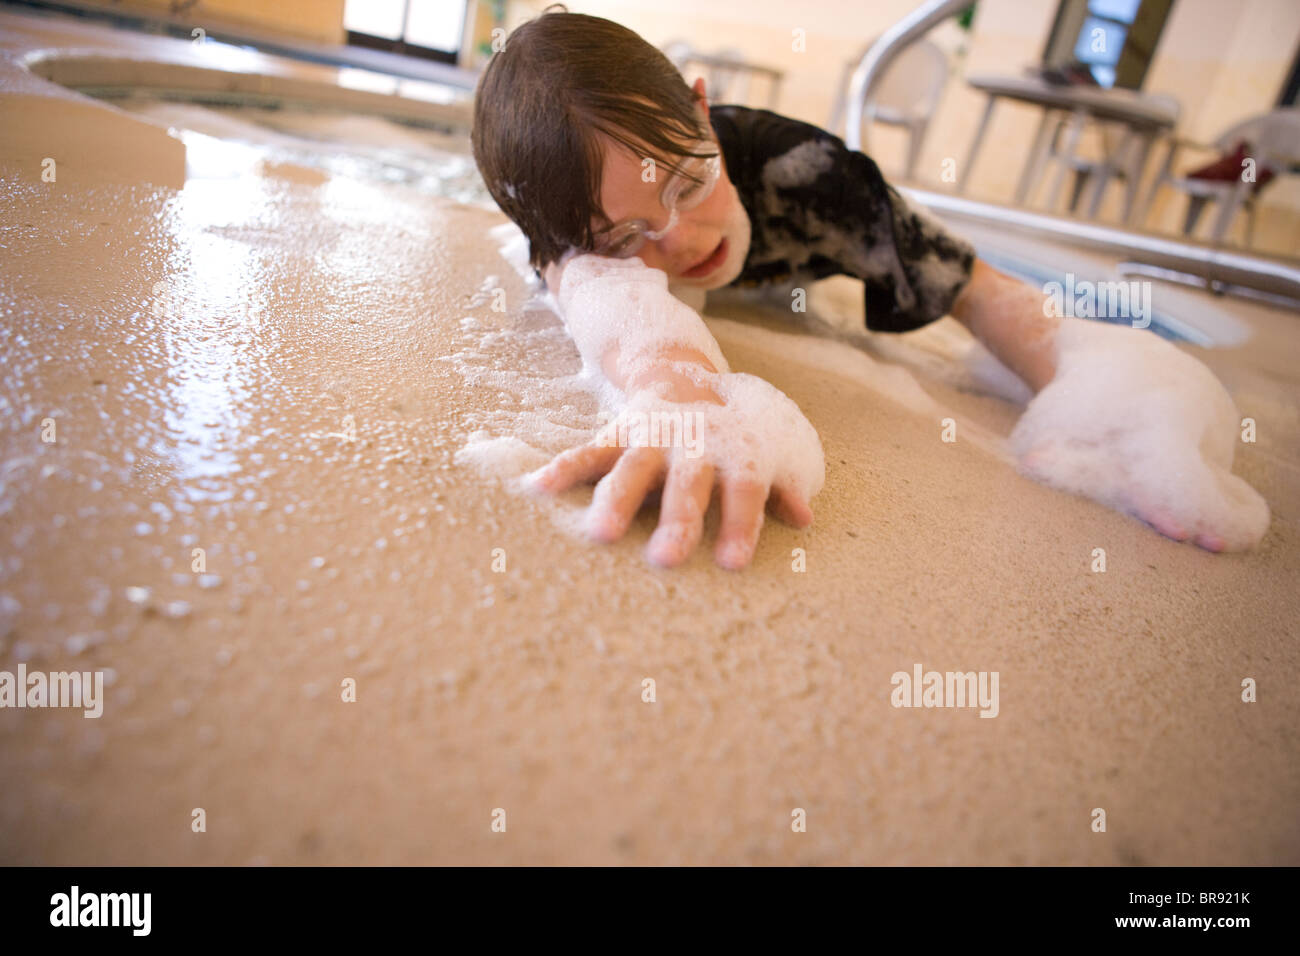 Tired child crawling out of a hot tub covered in foamy bubbles - Stock Image